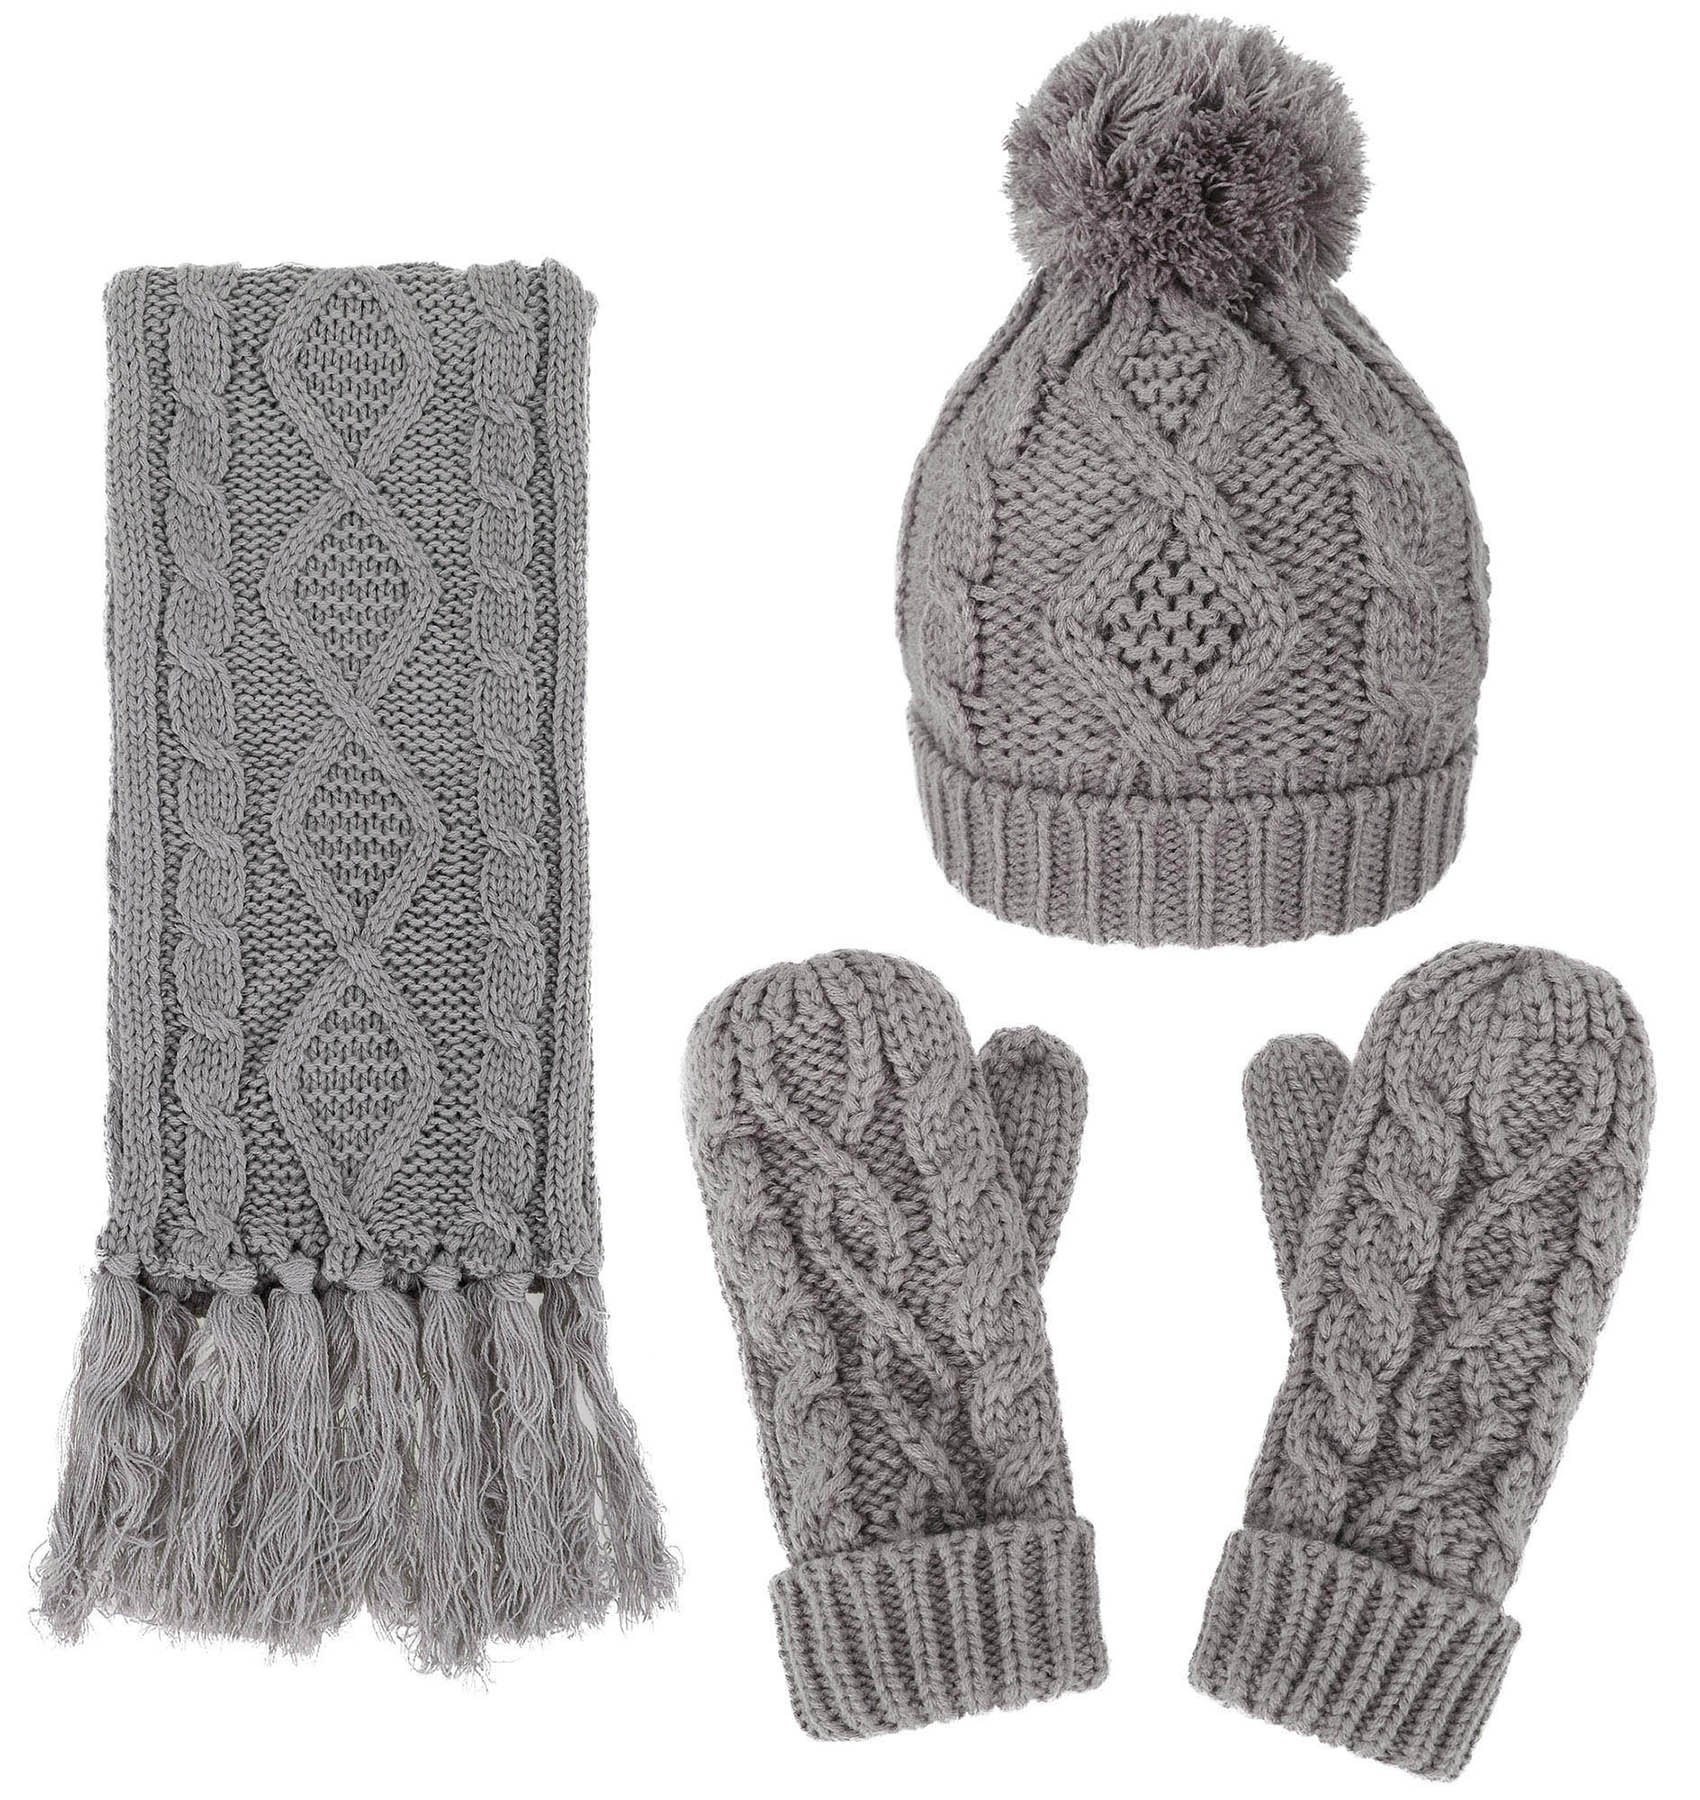 Women's Winter Warm 3PC Grey Cable Knit Gloves Scarf Beanie Hat Set